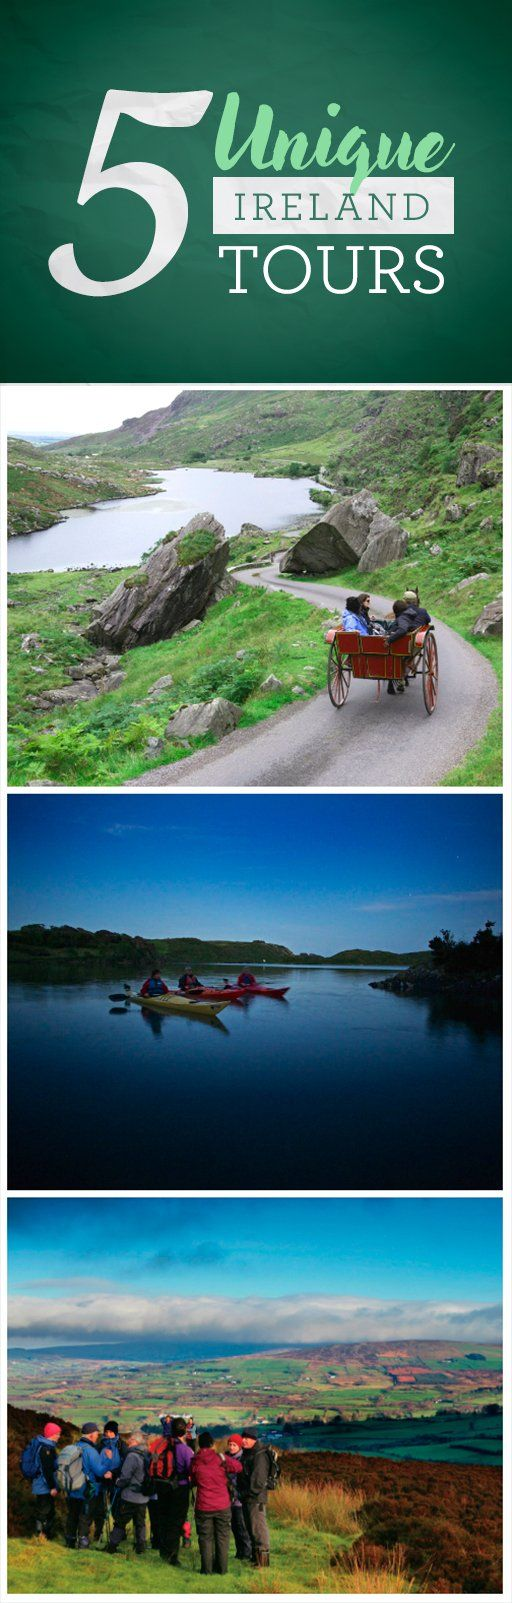 There are so many ways to see Ireland, and some of the most memorable are truly unique. Glide along velvet waters at nightfall on a kayak tour on Lough Hyne in County Cork, or forage for food on a family farm amidst the stunning Sperrin Mountains in County Down. And if it's serenity and scenery you're after, embark on a horse-led jaunting car through Kerry's wild Killarney National Park. No matter what your pace, Ireland's special tours are an experience not to be missed.